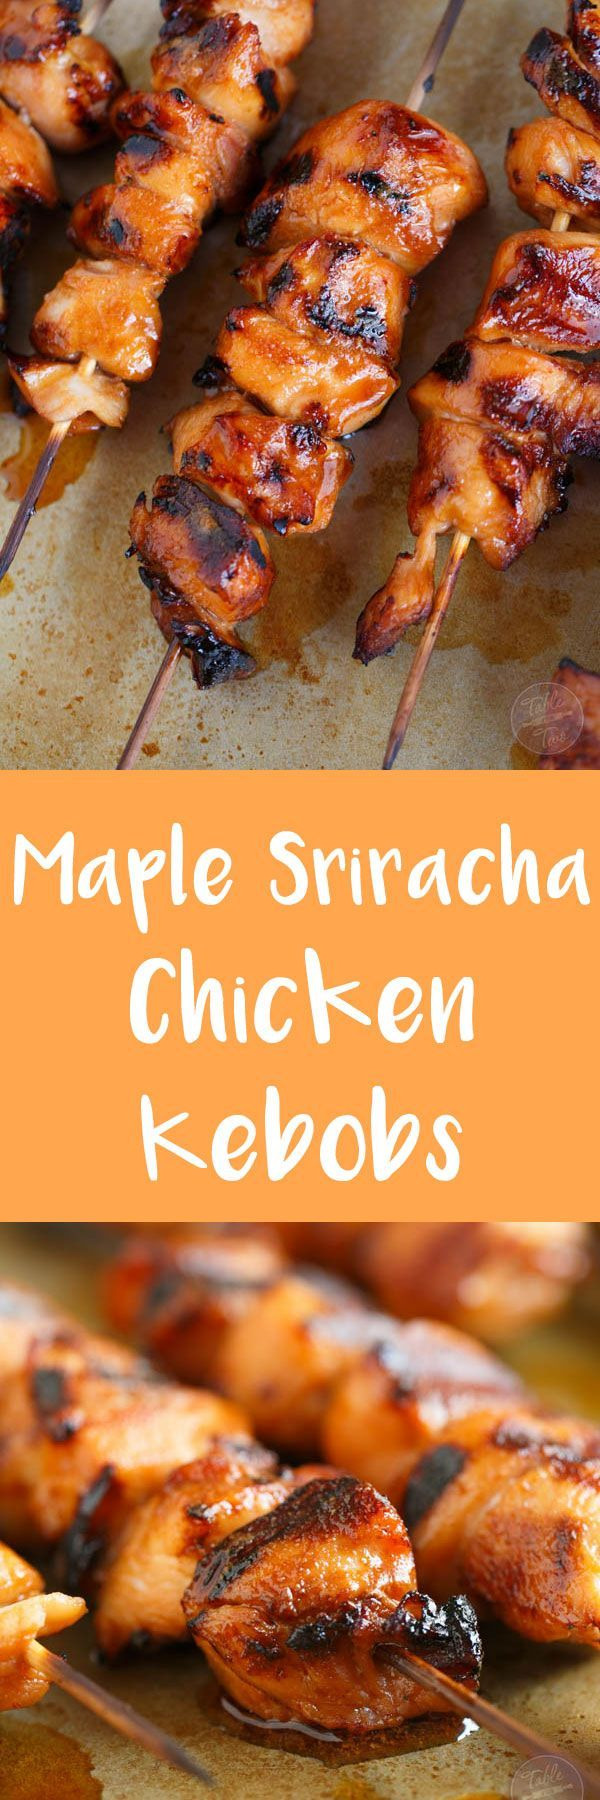 Jul 7, 2020 – Grilled maple sriracha chicken kebobs are the best combination of salty, spicy, and sweet! With the easies…